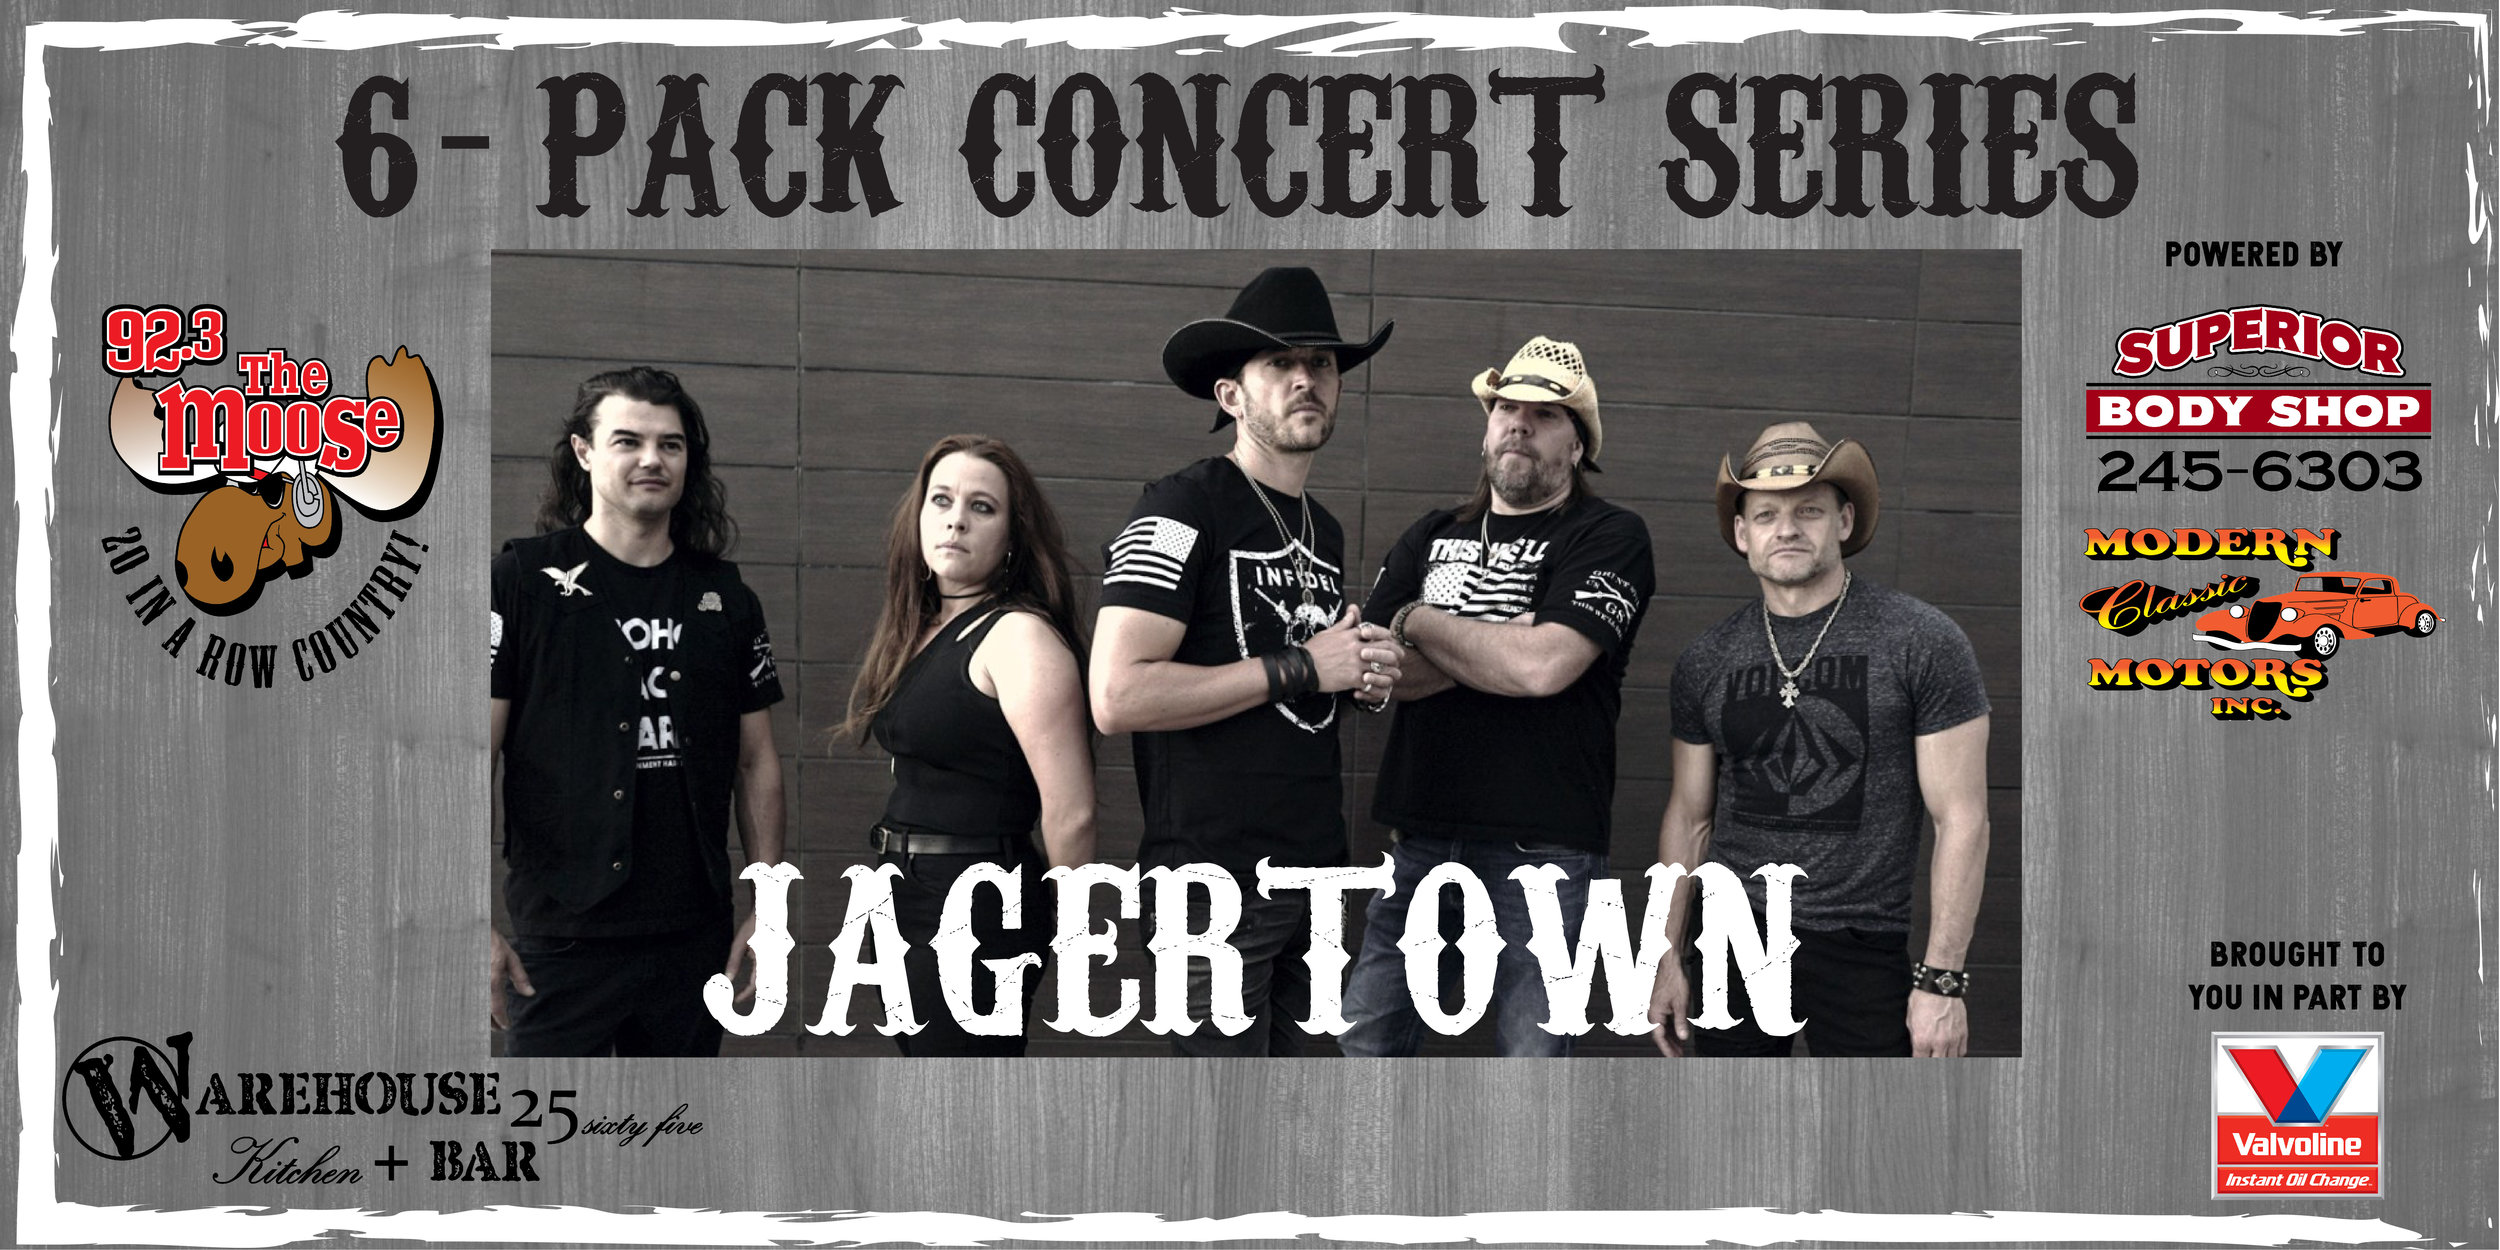 They are back and ready to throw down all your favorite tunes! Come get your swing on with the gang from Jagertown USA they always throw a HUGE PARTY when the hit the Warehouse Stage!